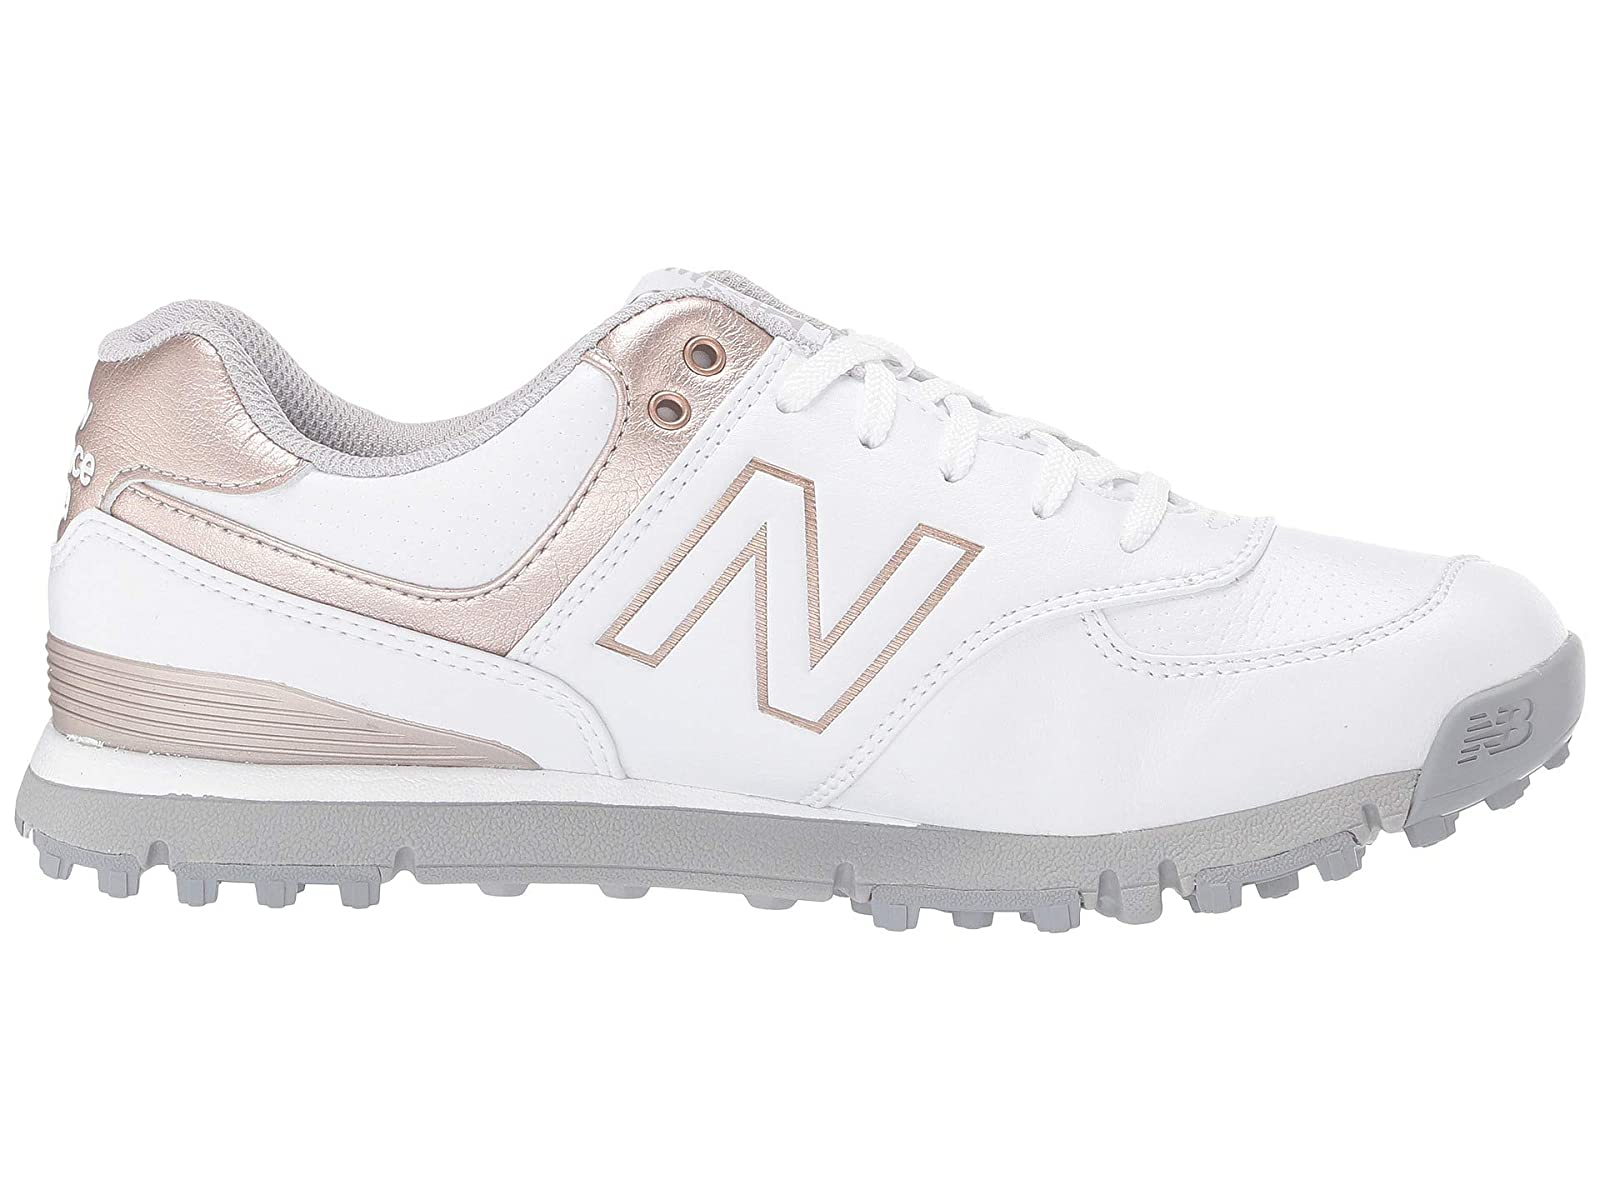 d712fdf835f11 Women's Sneakers & Athletic Shoes New Balance Golf 574 SL | eBay